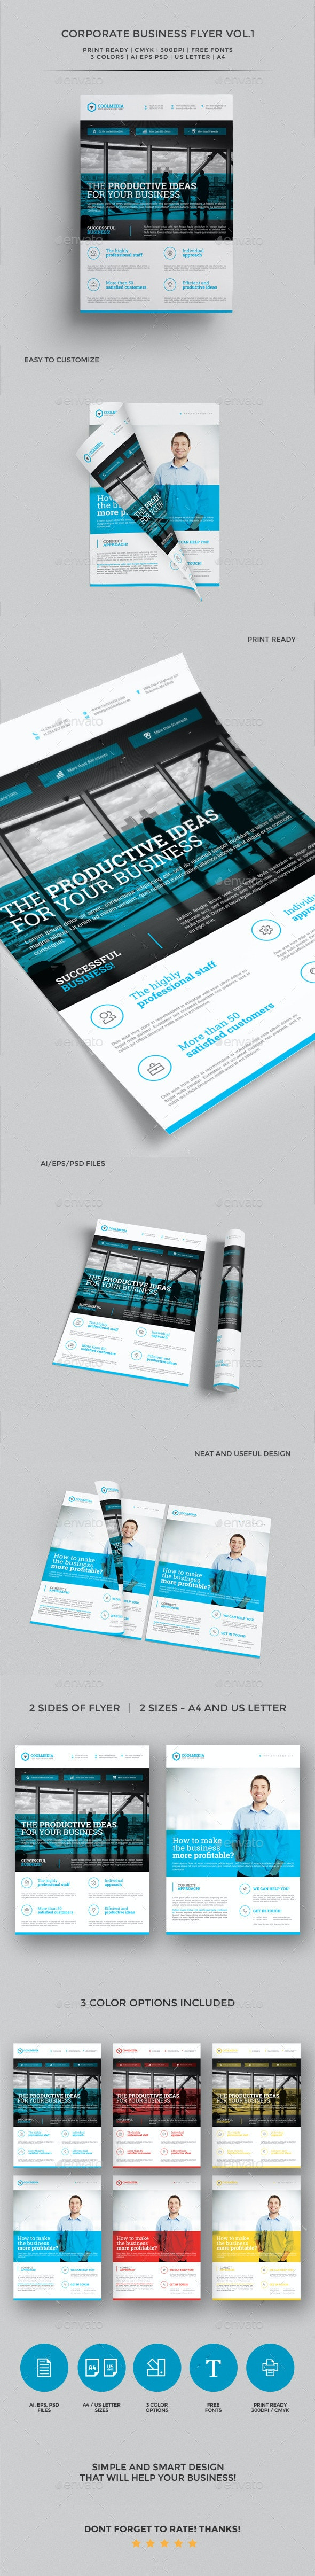 Corporate Business Flyer vol. 1 - Corporate Flyers